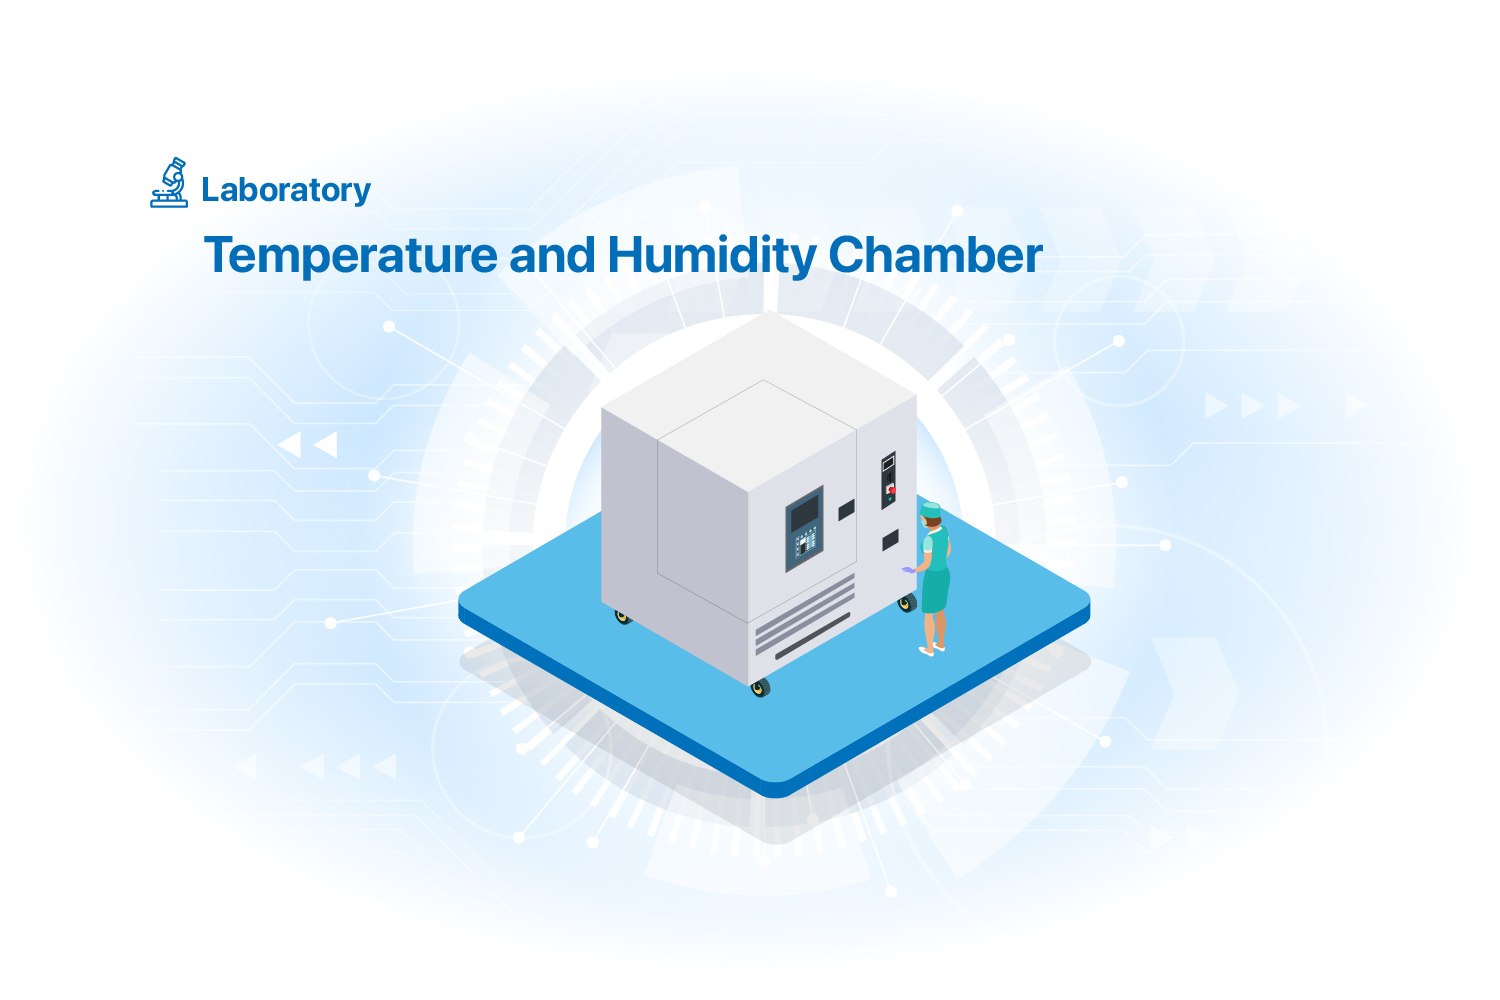 proimages/PIC/trade_show/BC_E-BOOTH/05_Laboratory/5.3_Lab_Temperature__Humidity_Chamber.jpg